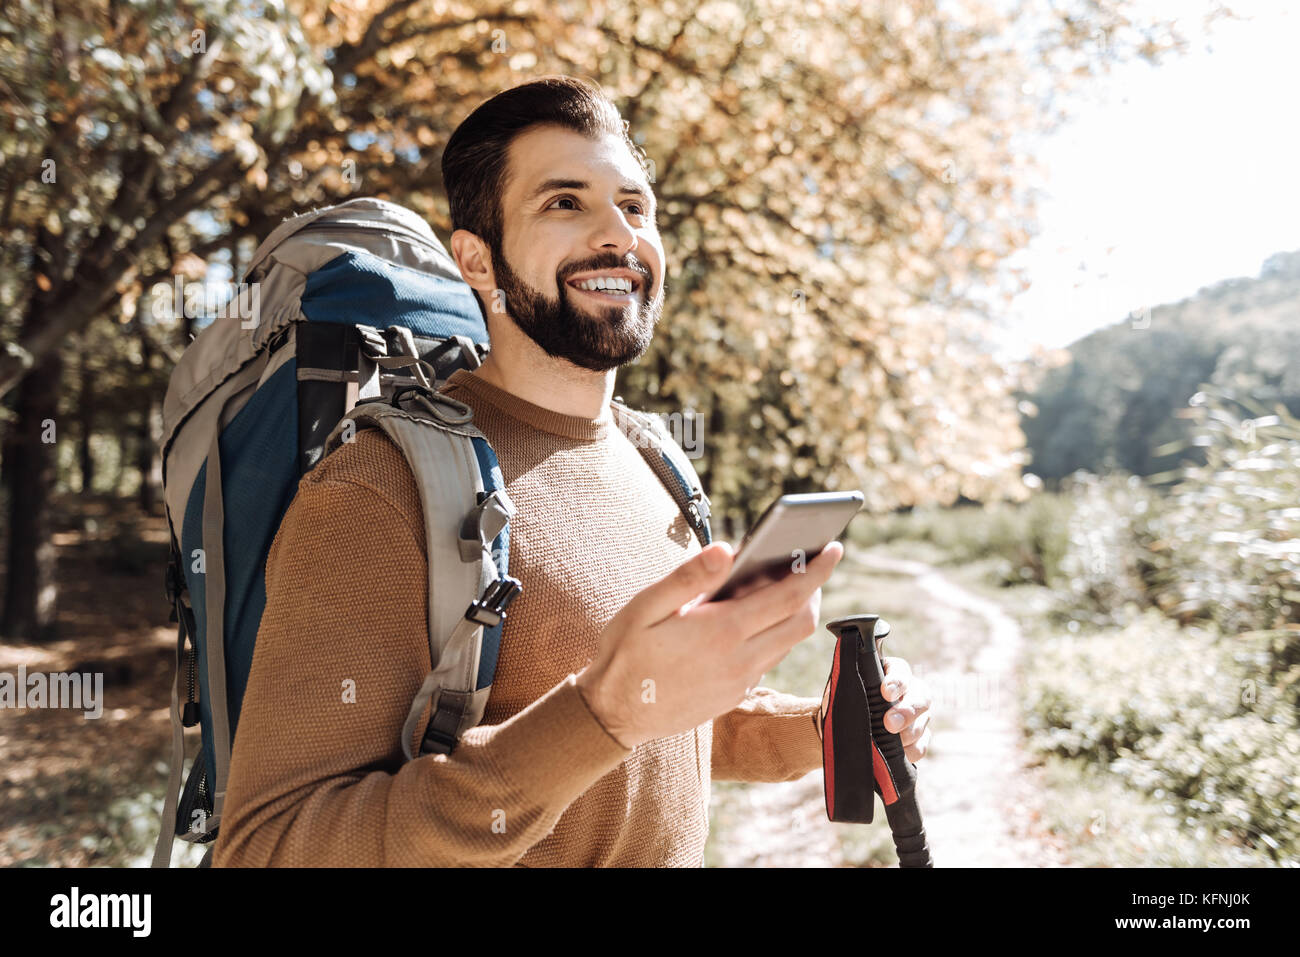 Handsome man having a walk outdoors - Stock Image